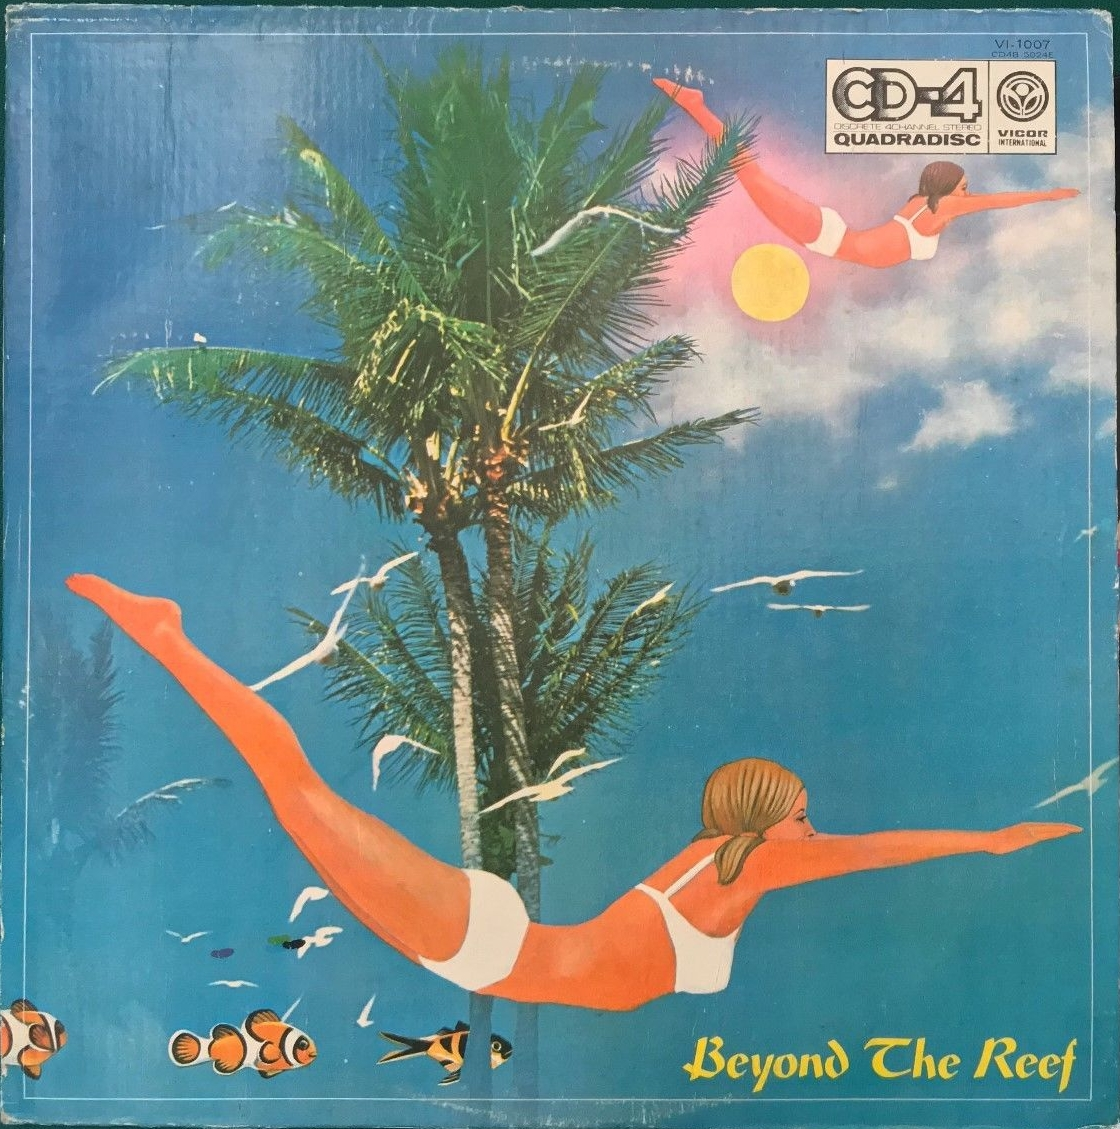 BLUE HAWAIIANS WITH STRINGS -Beyond the Reef. Vicor International VI 1007 (CD4) [Philippines]a.jpg